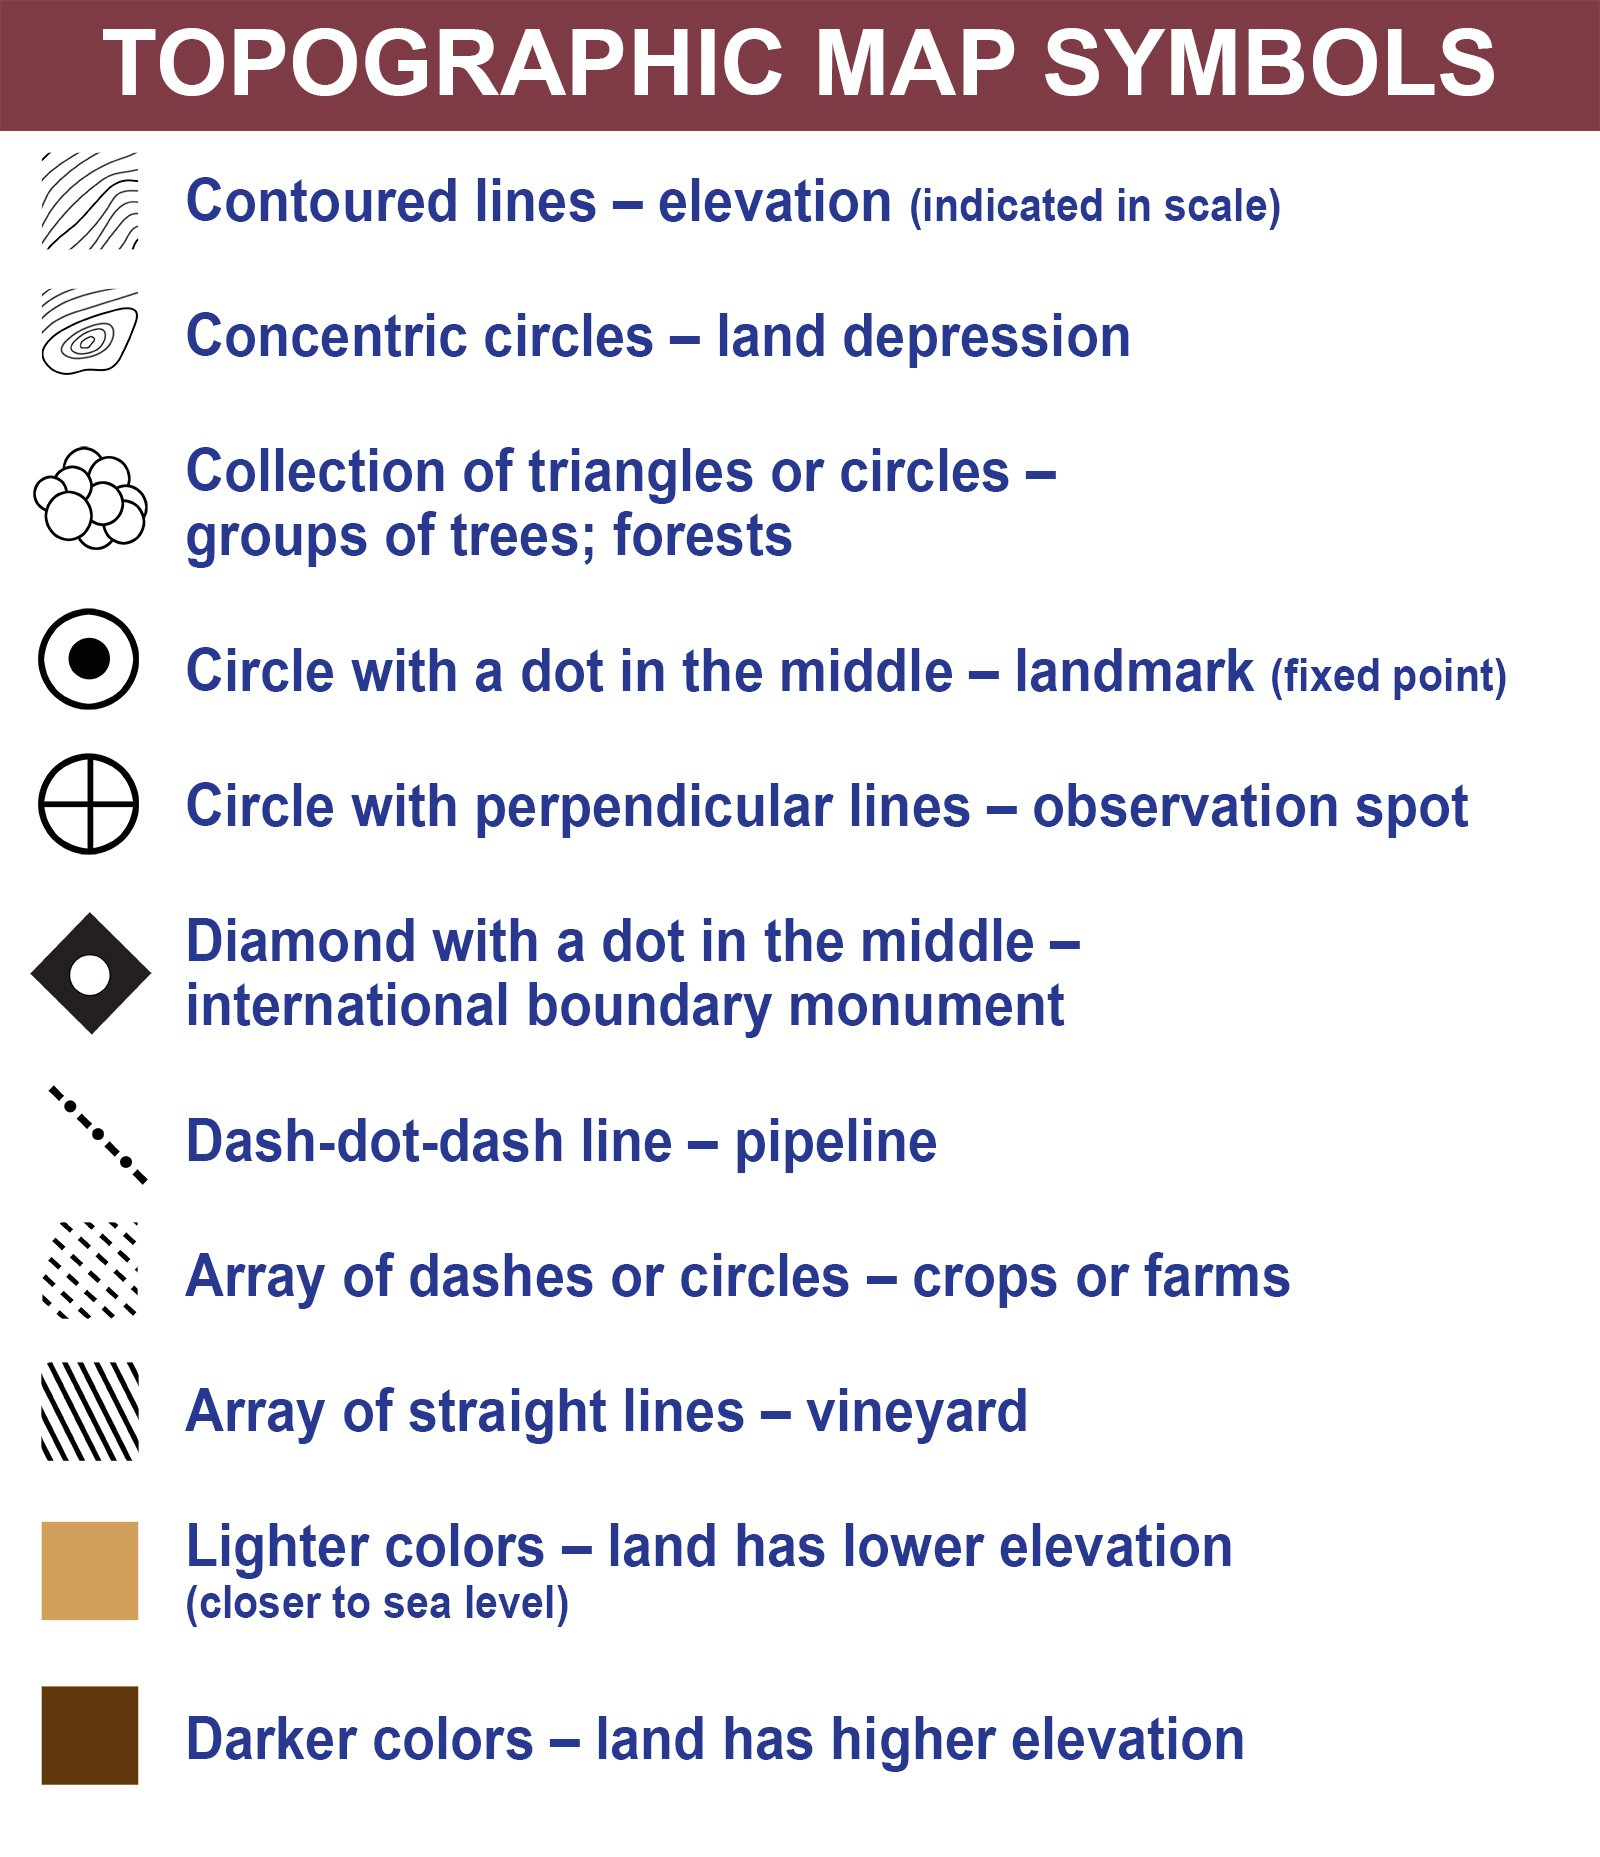 topographic map symbols